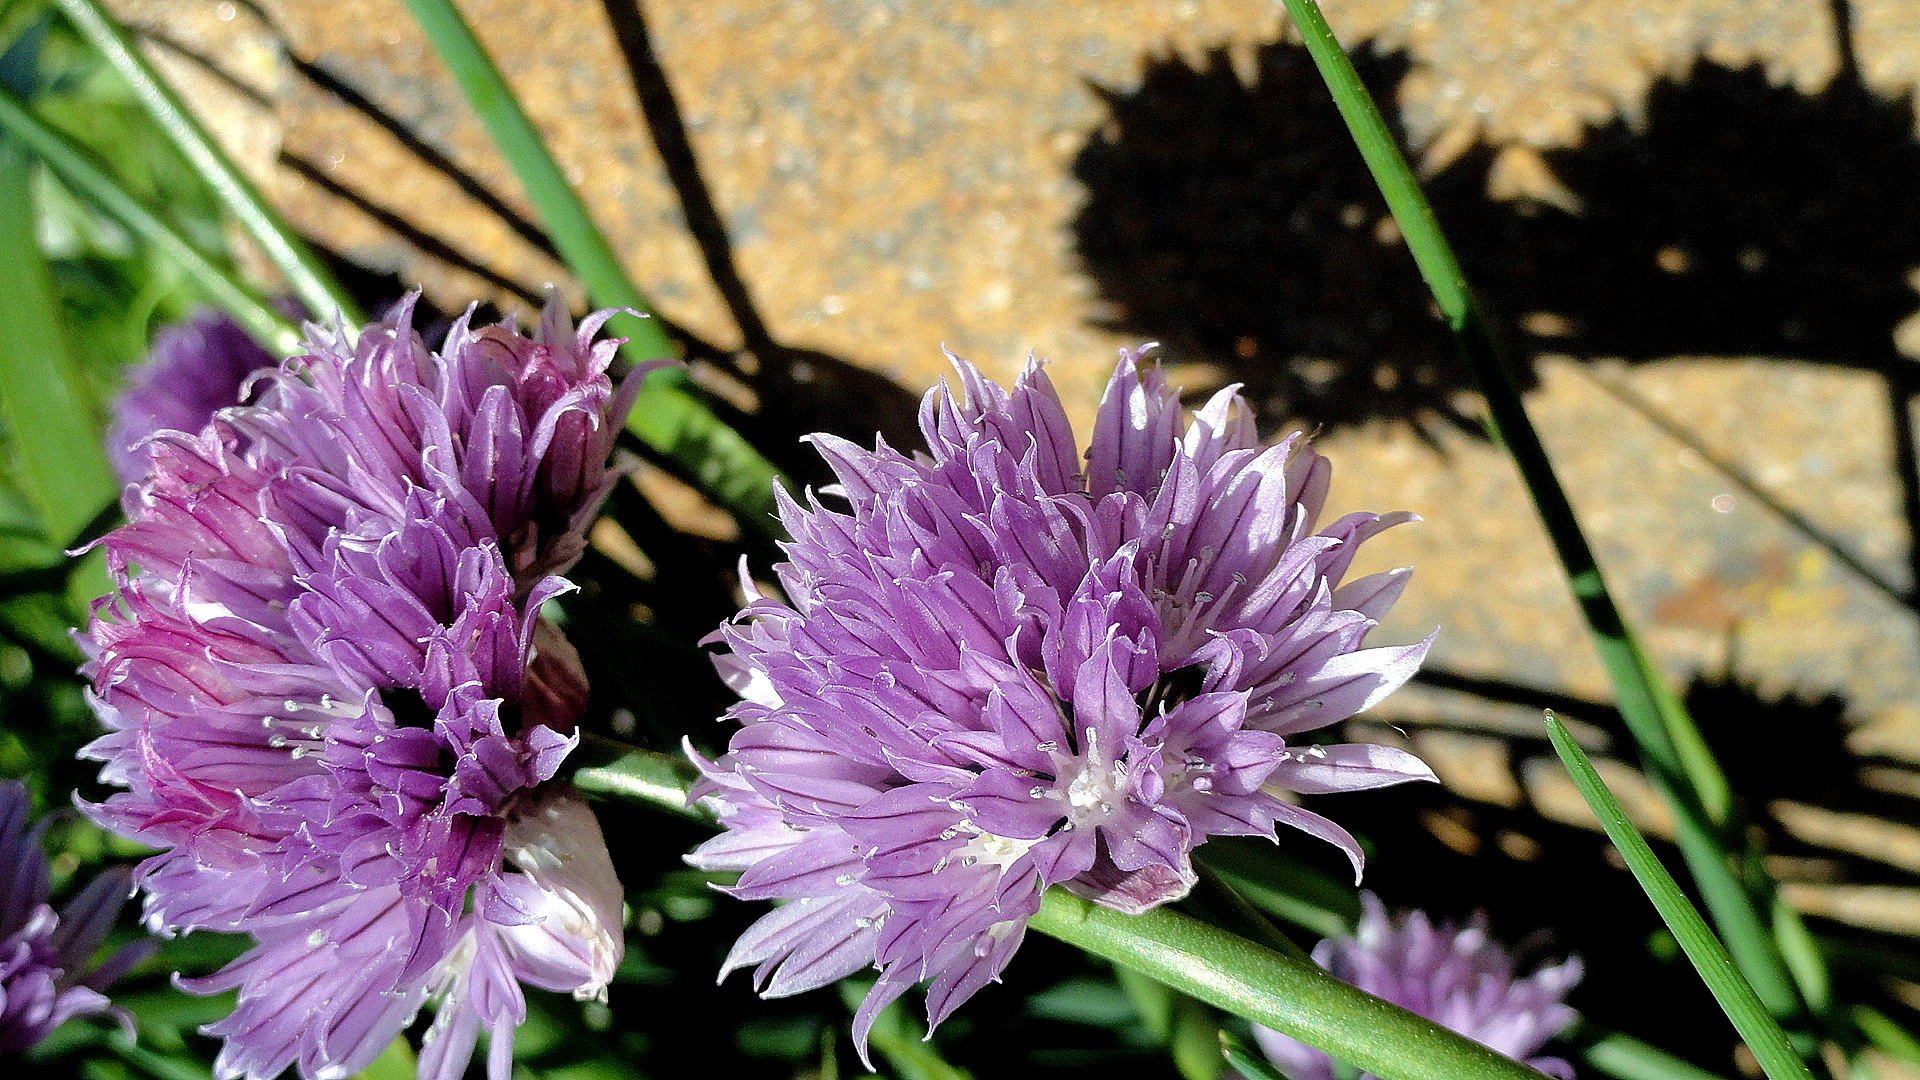 Chive Blossoms & Stone Wall